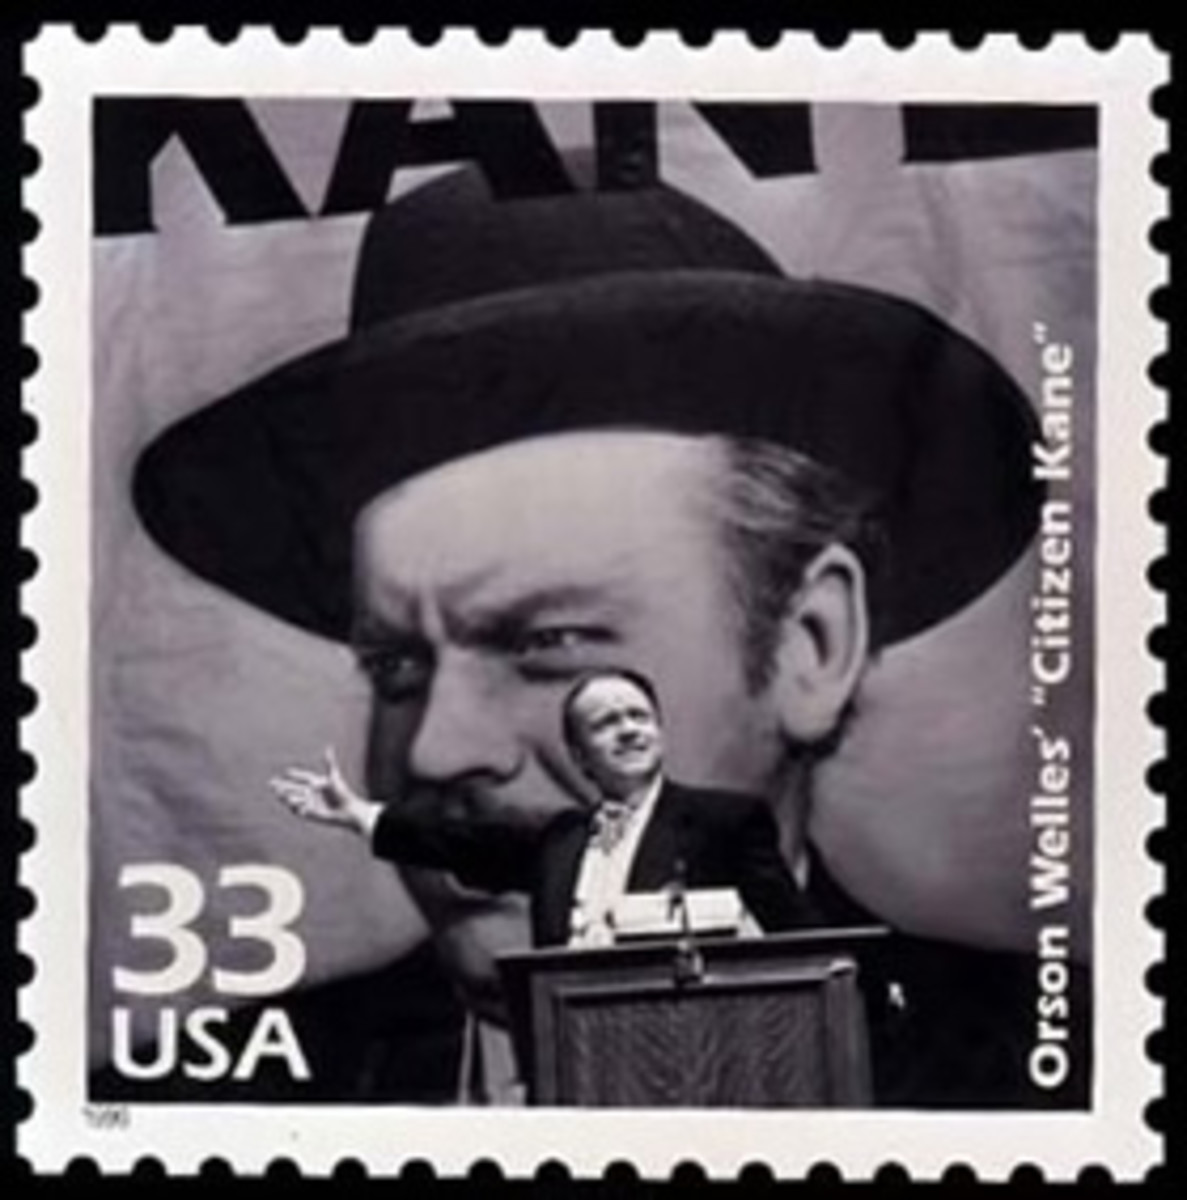 The U.S. Postal Service issued a commemorative stamp featuring Citizen Kane in 1999.